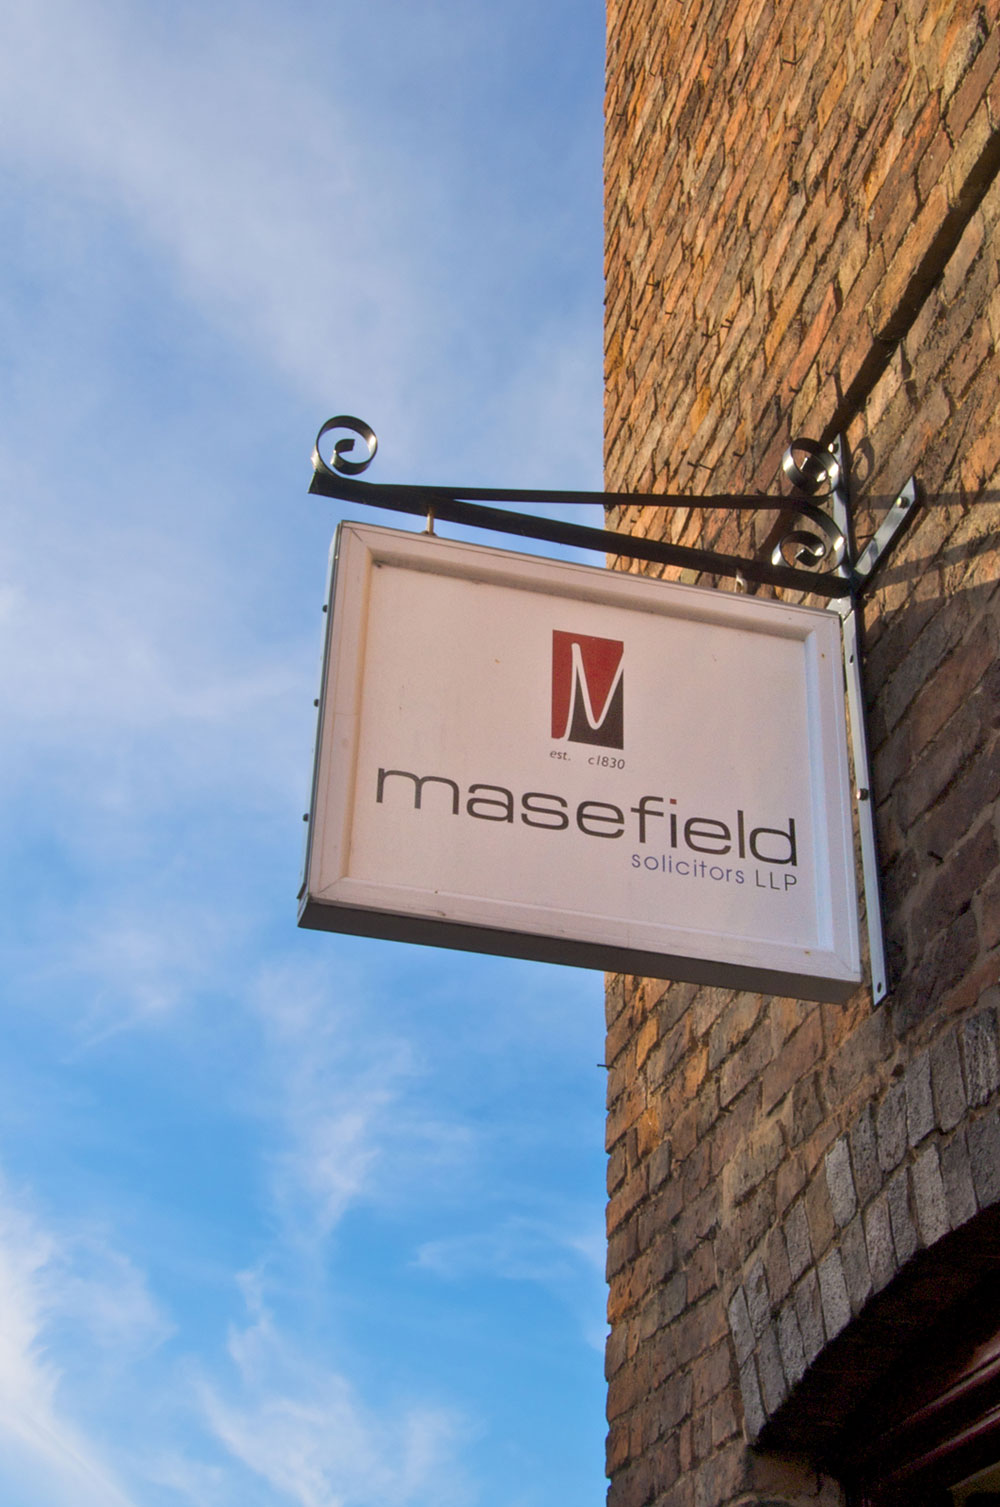 Masefield Solicitors LLP  masefield-solicitors.co.uk